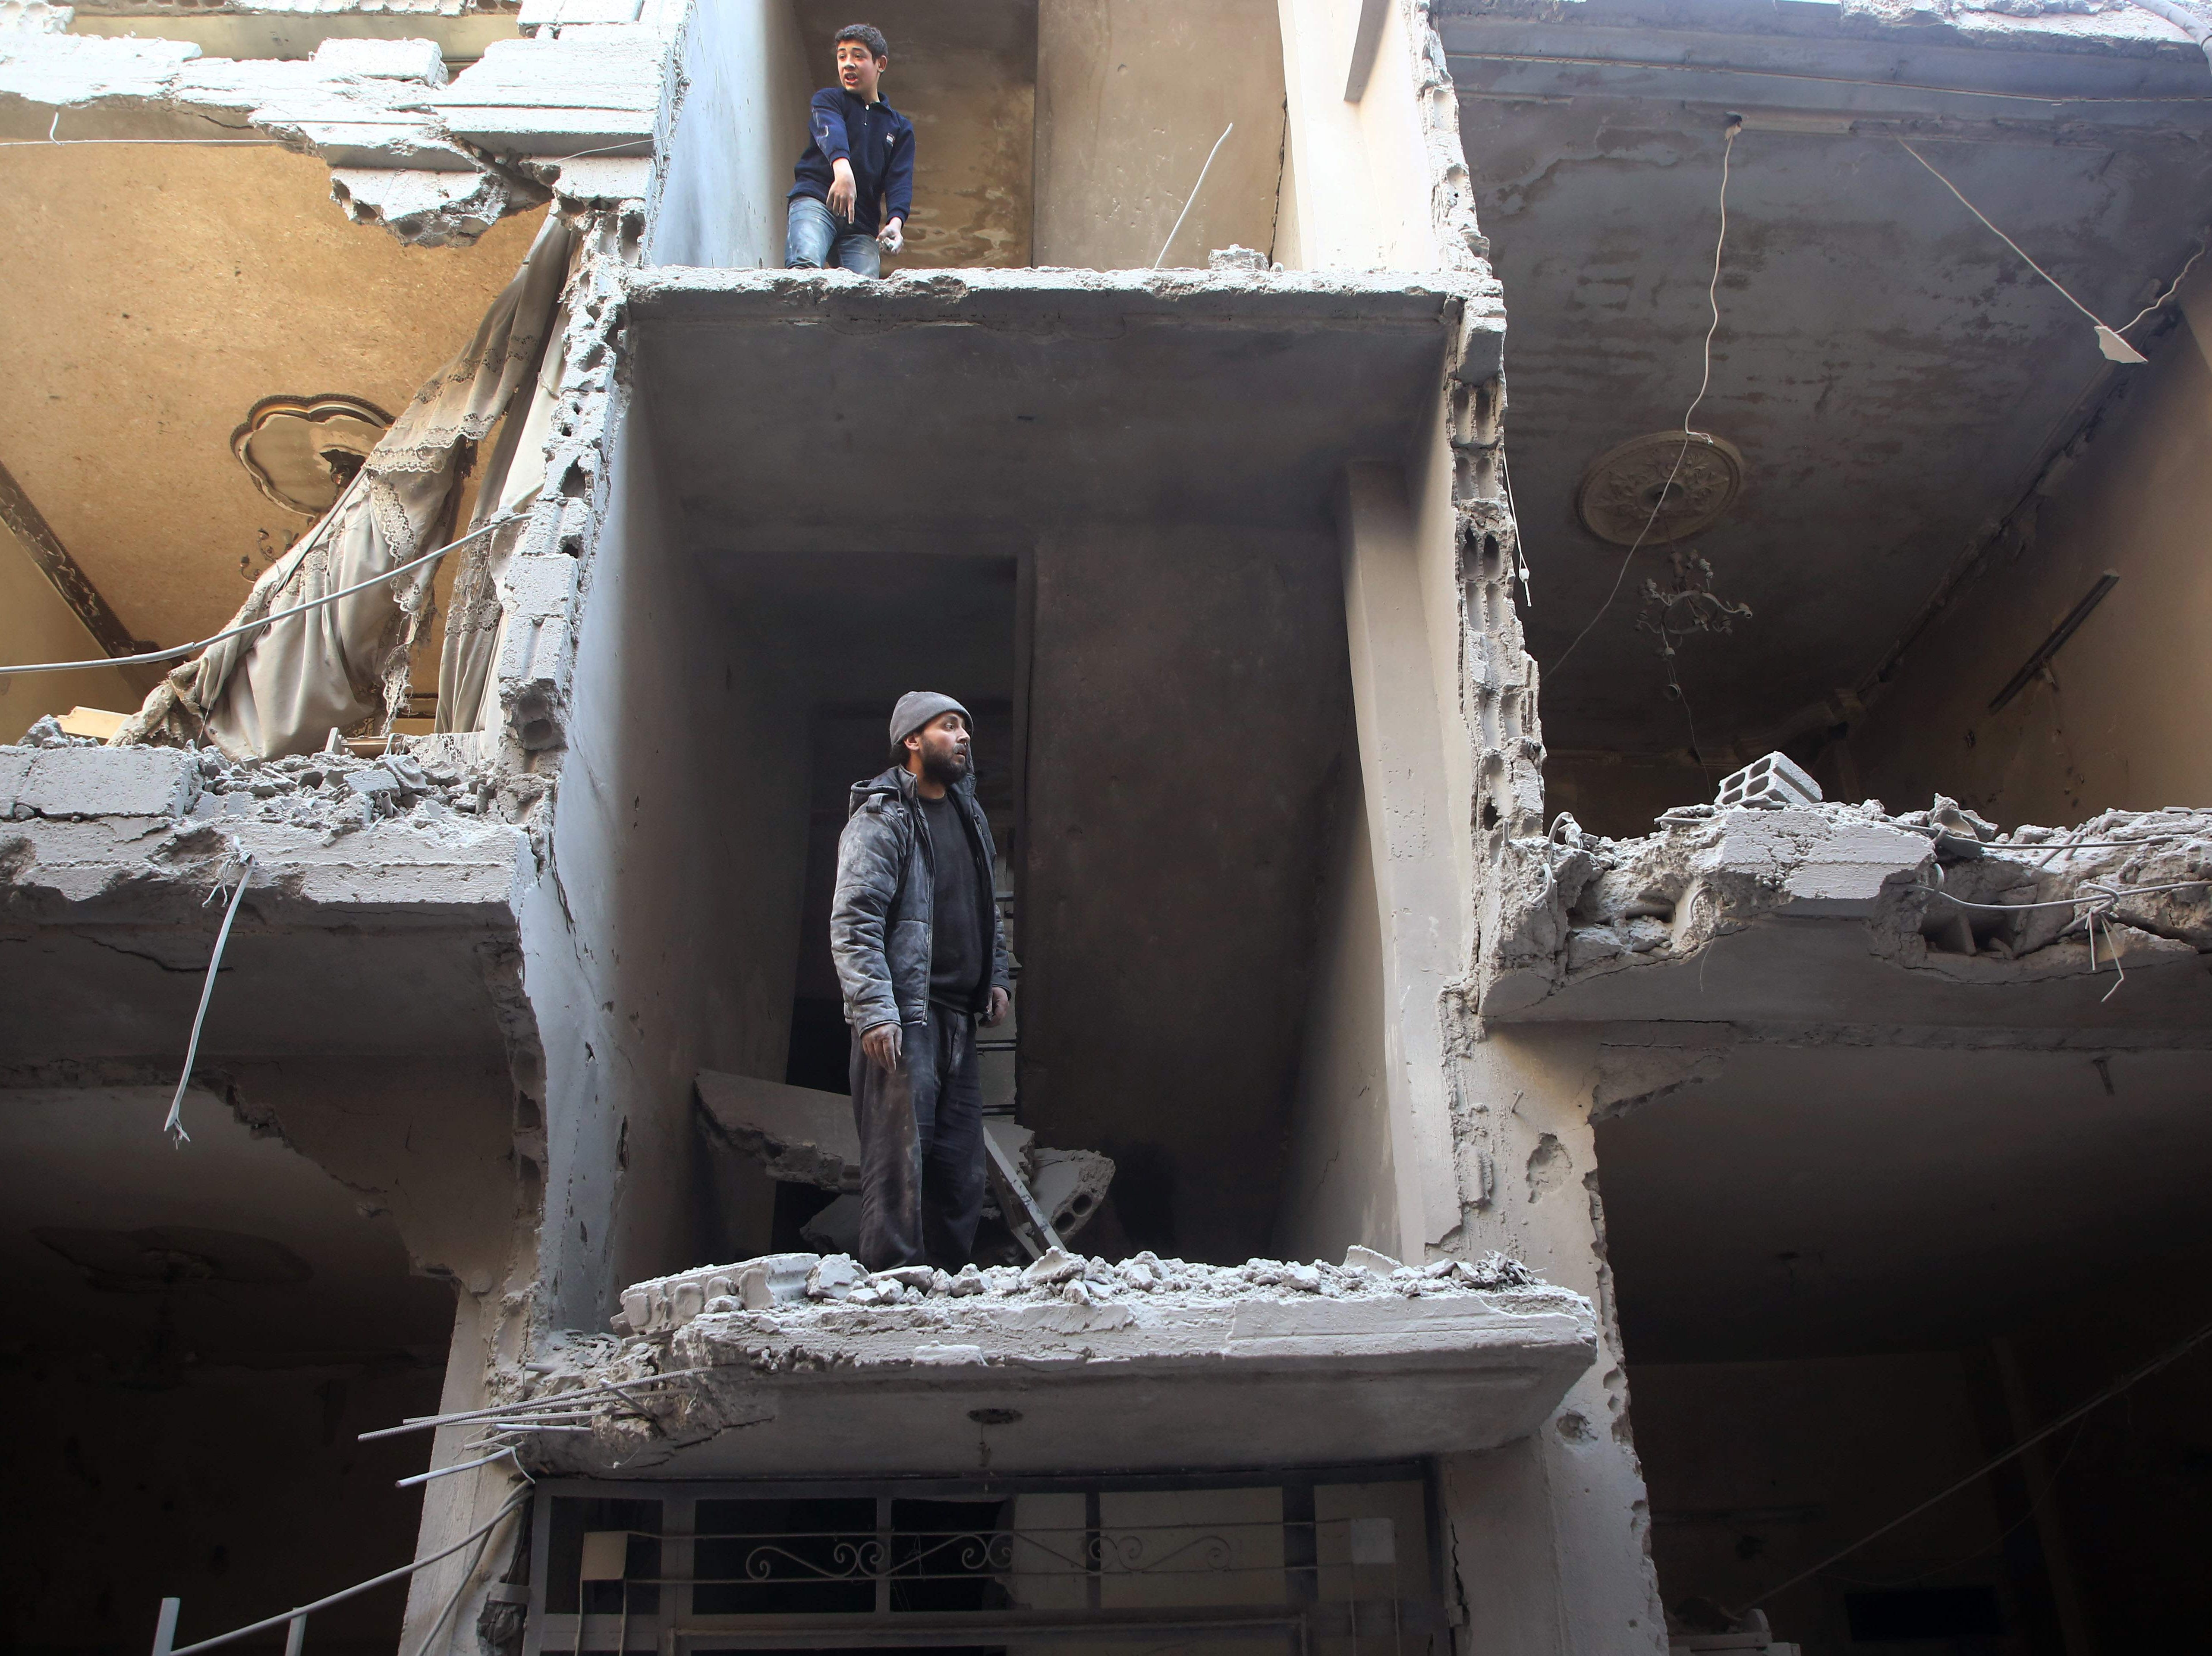 Feb. 1, 2018: Syrians inspect the damage in a residential building hit in air strikes by regime forces on Arbin, in the rebel-held Eastern Ghouta region.